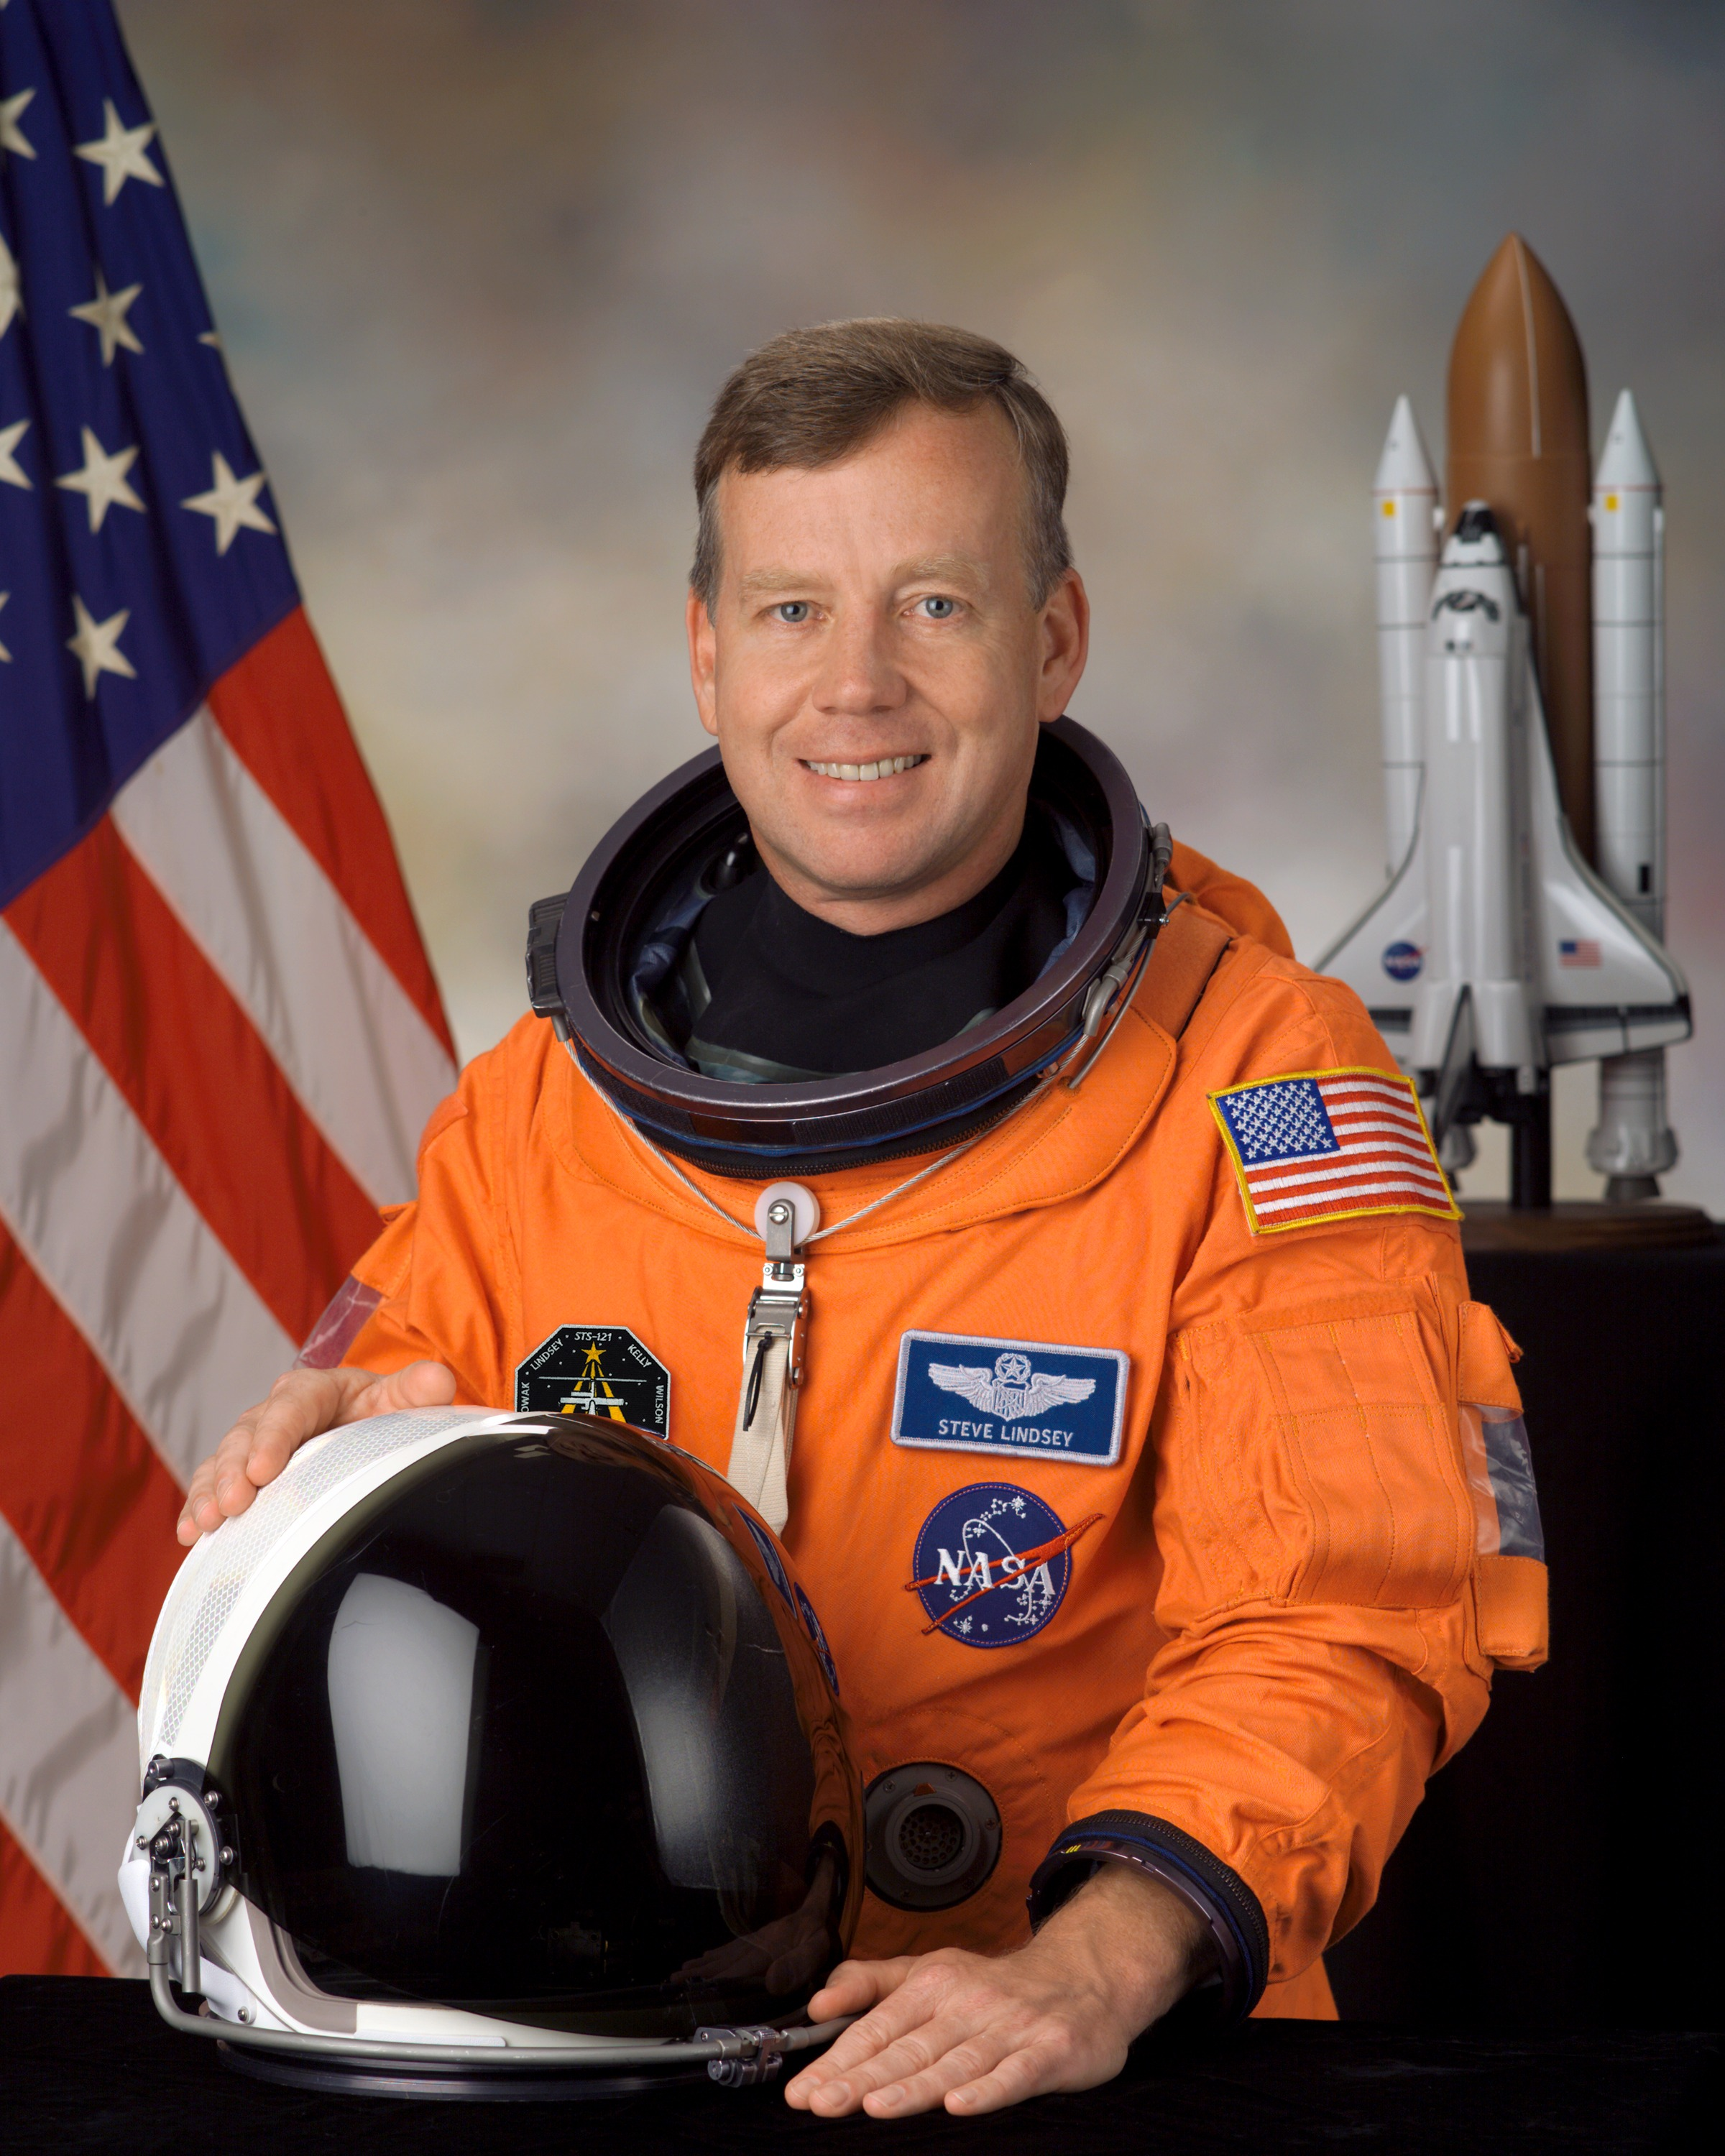 astronaut rank - photo #16